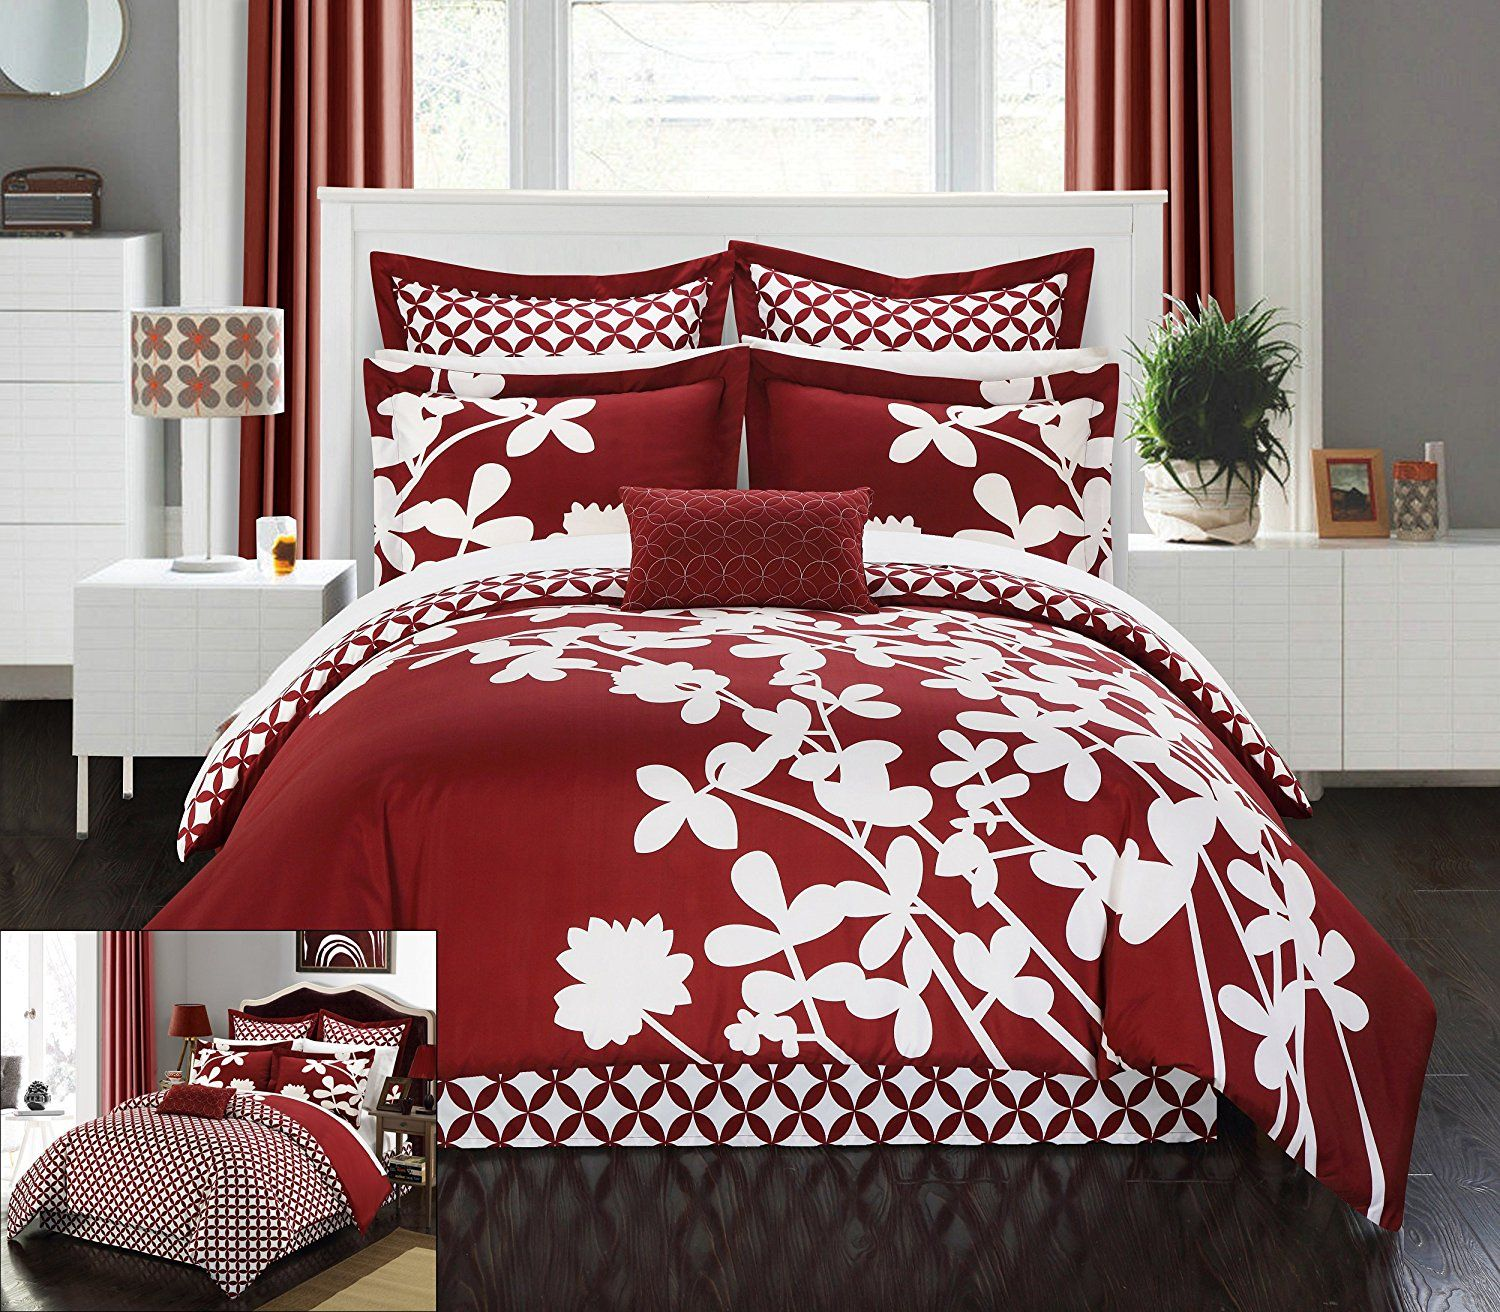 Burgundy Bedding Sets   Chic Home 7 Piece Iris Reversible Large Scale  Floral Design Printed With Diamond Pattern Reverse Comforter Set, King, ...